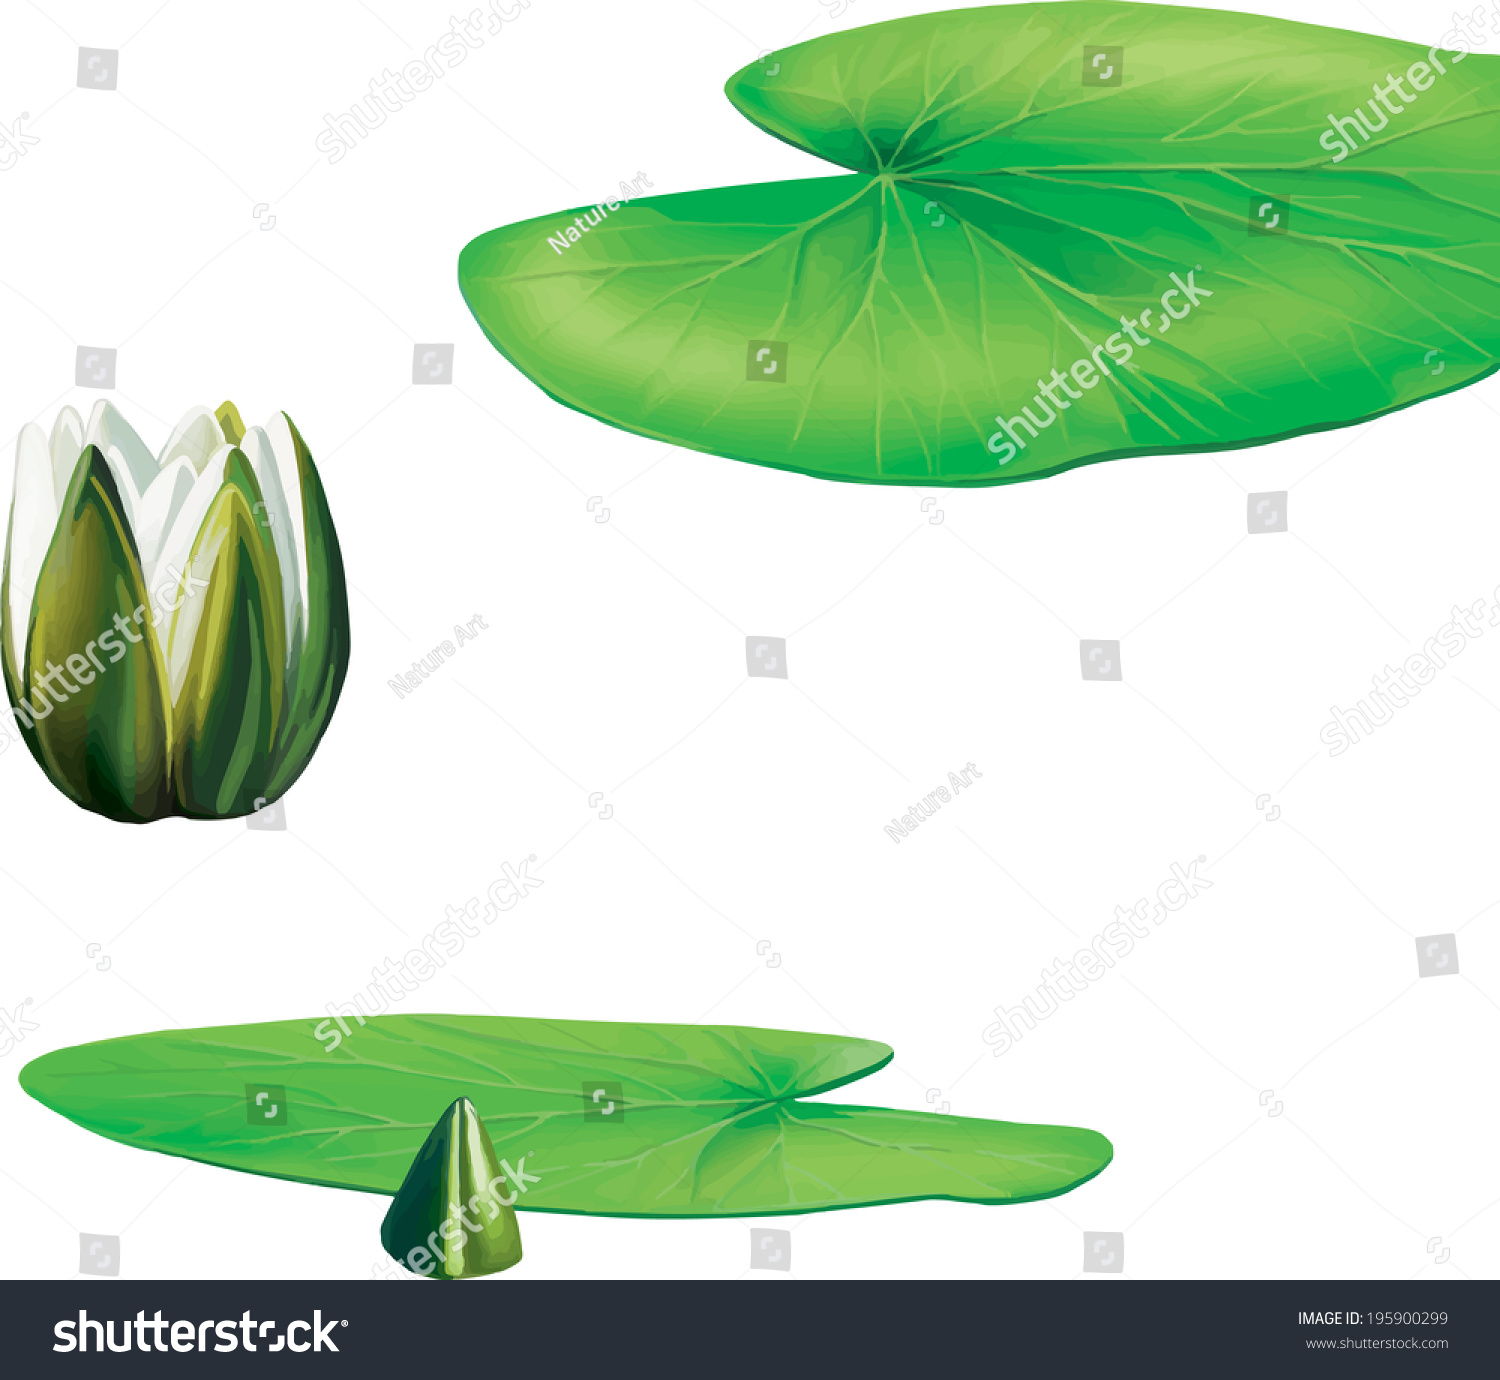 lotus in water plant diagram bohr rutherford of helium leaves lily flower stock vector